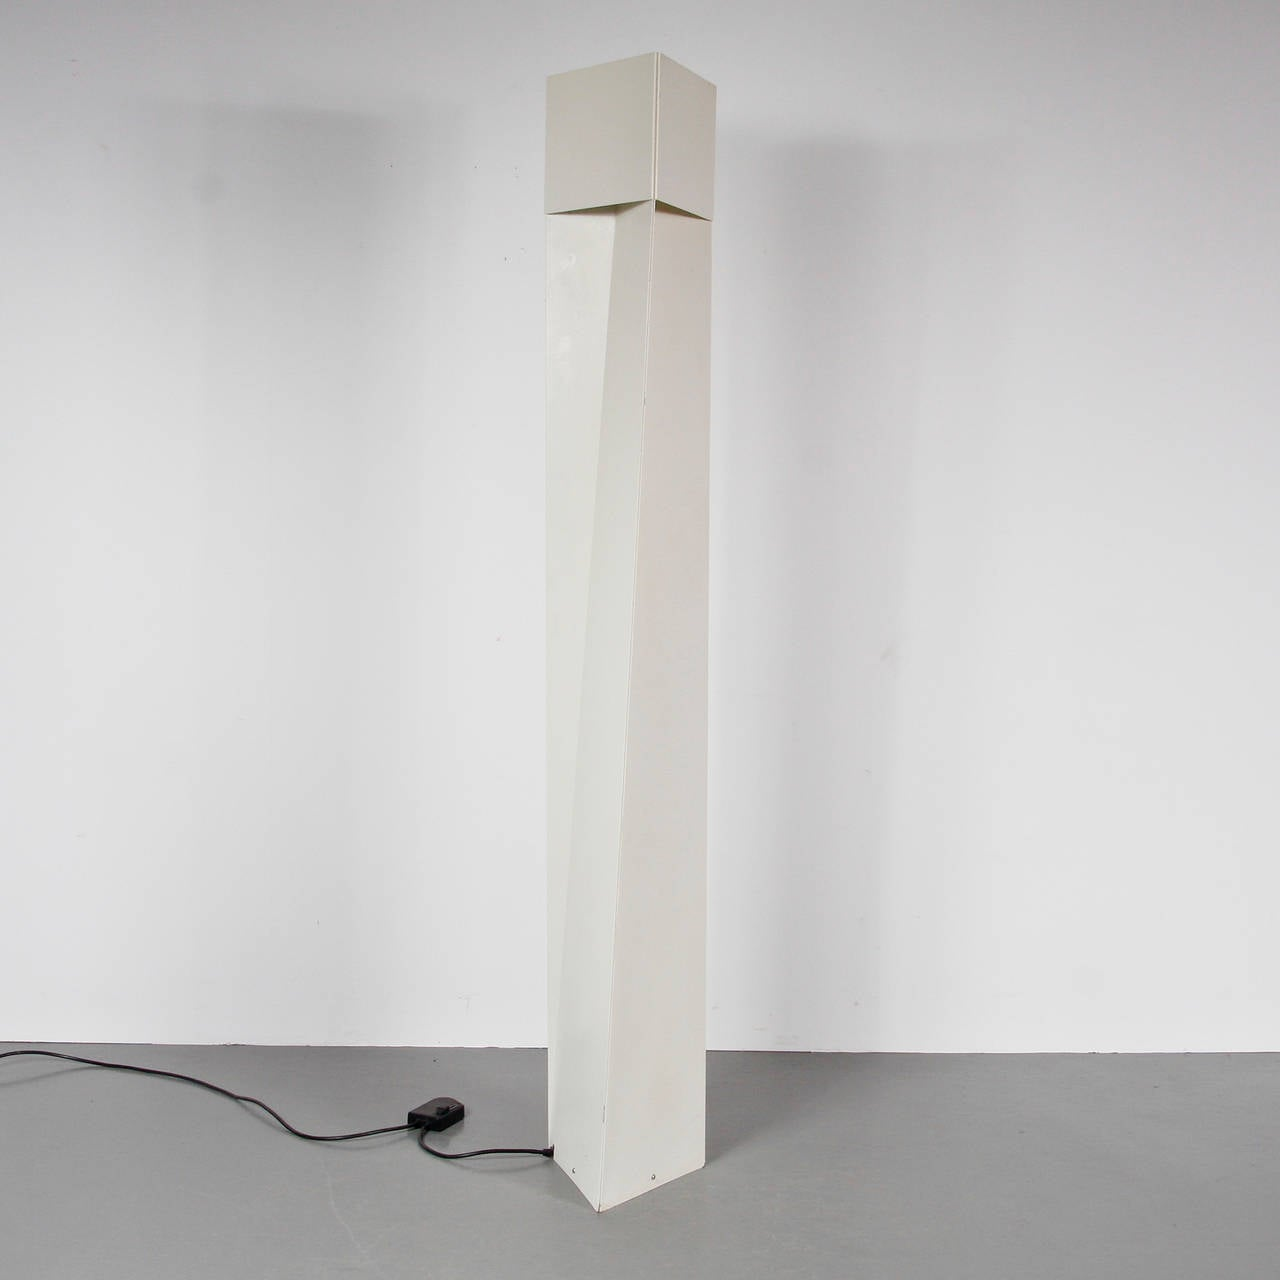 Mart van Schijndel Sculptural Floor Lamp for Martech 2